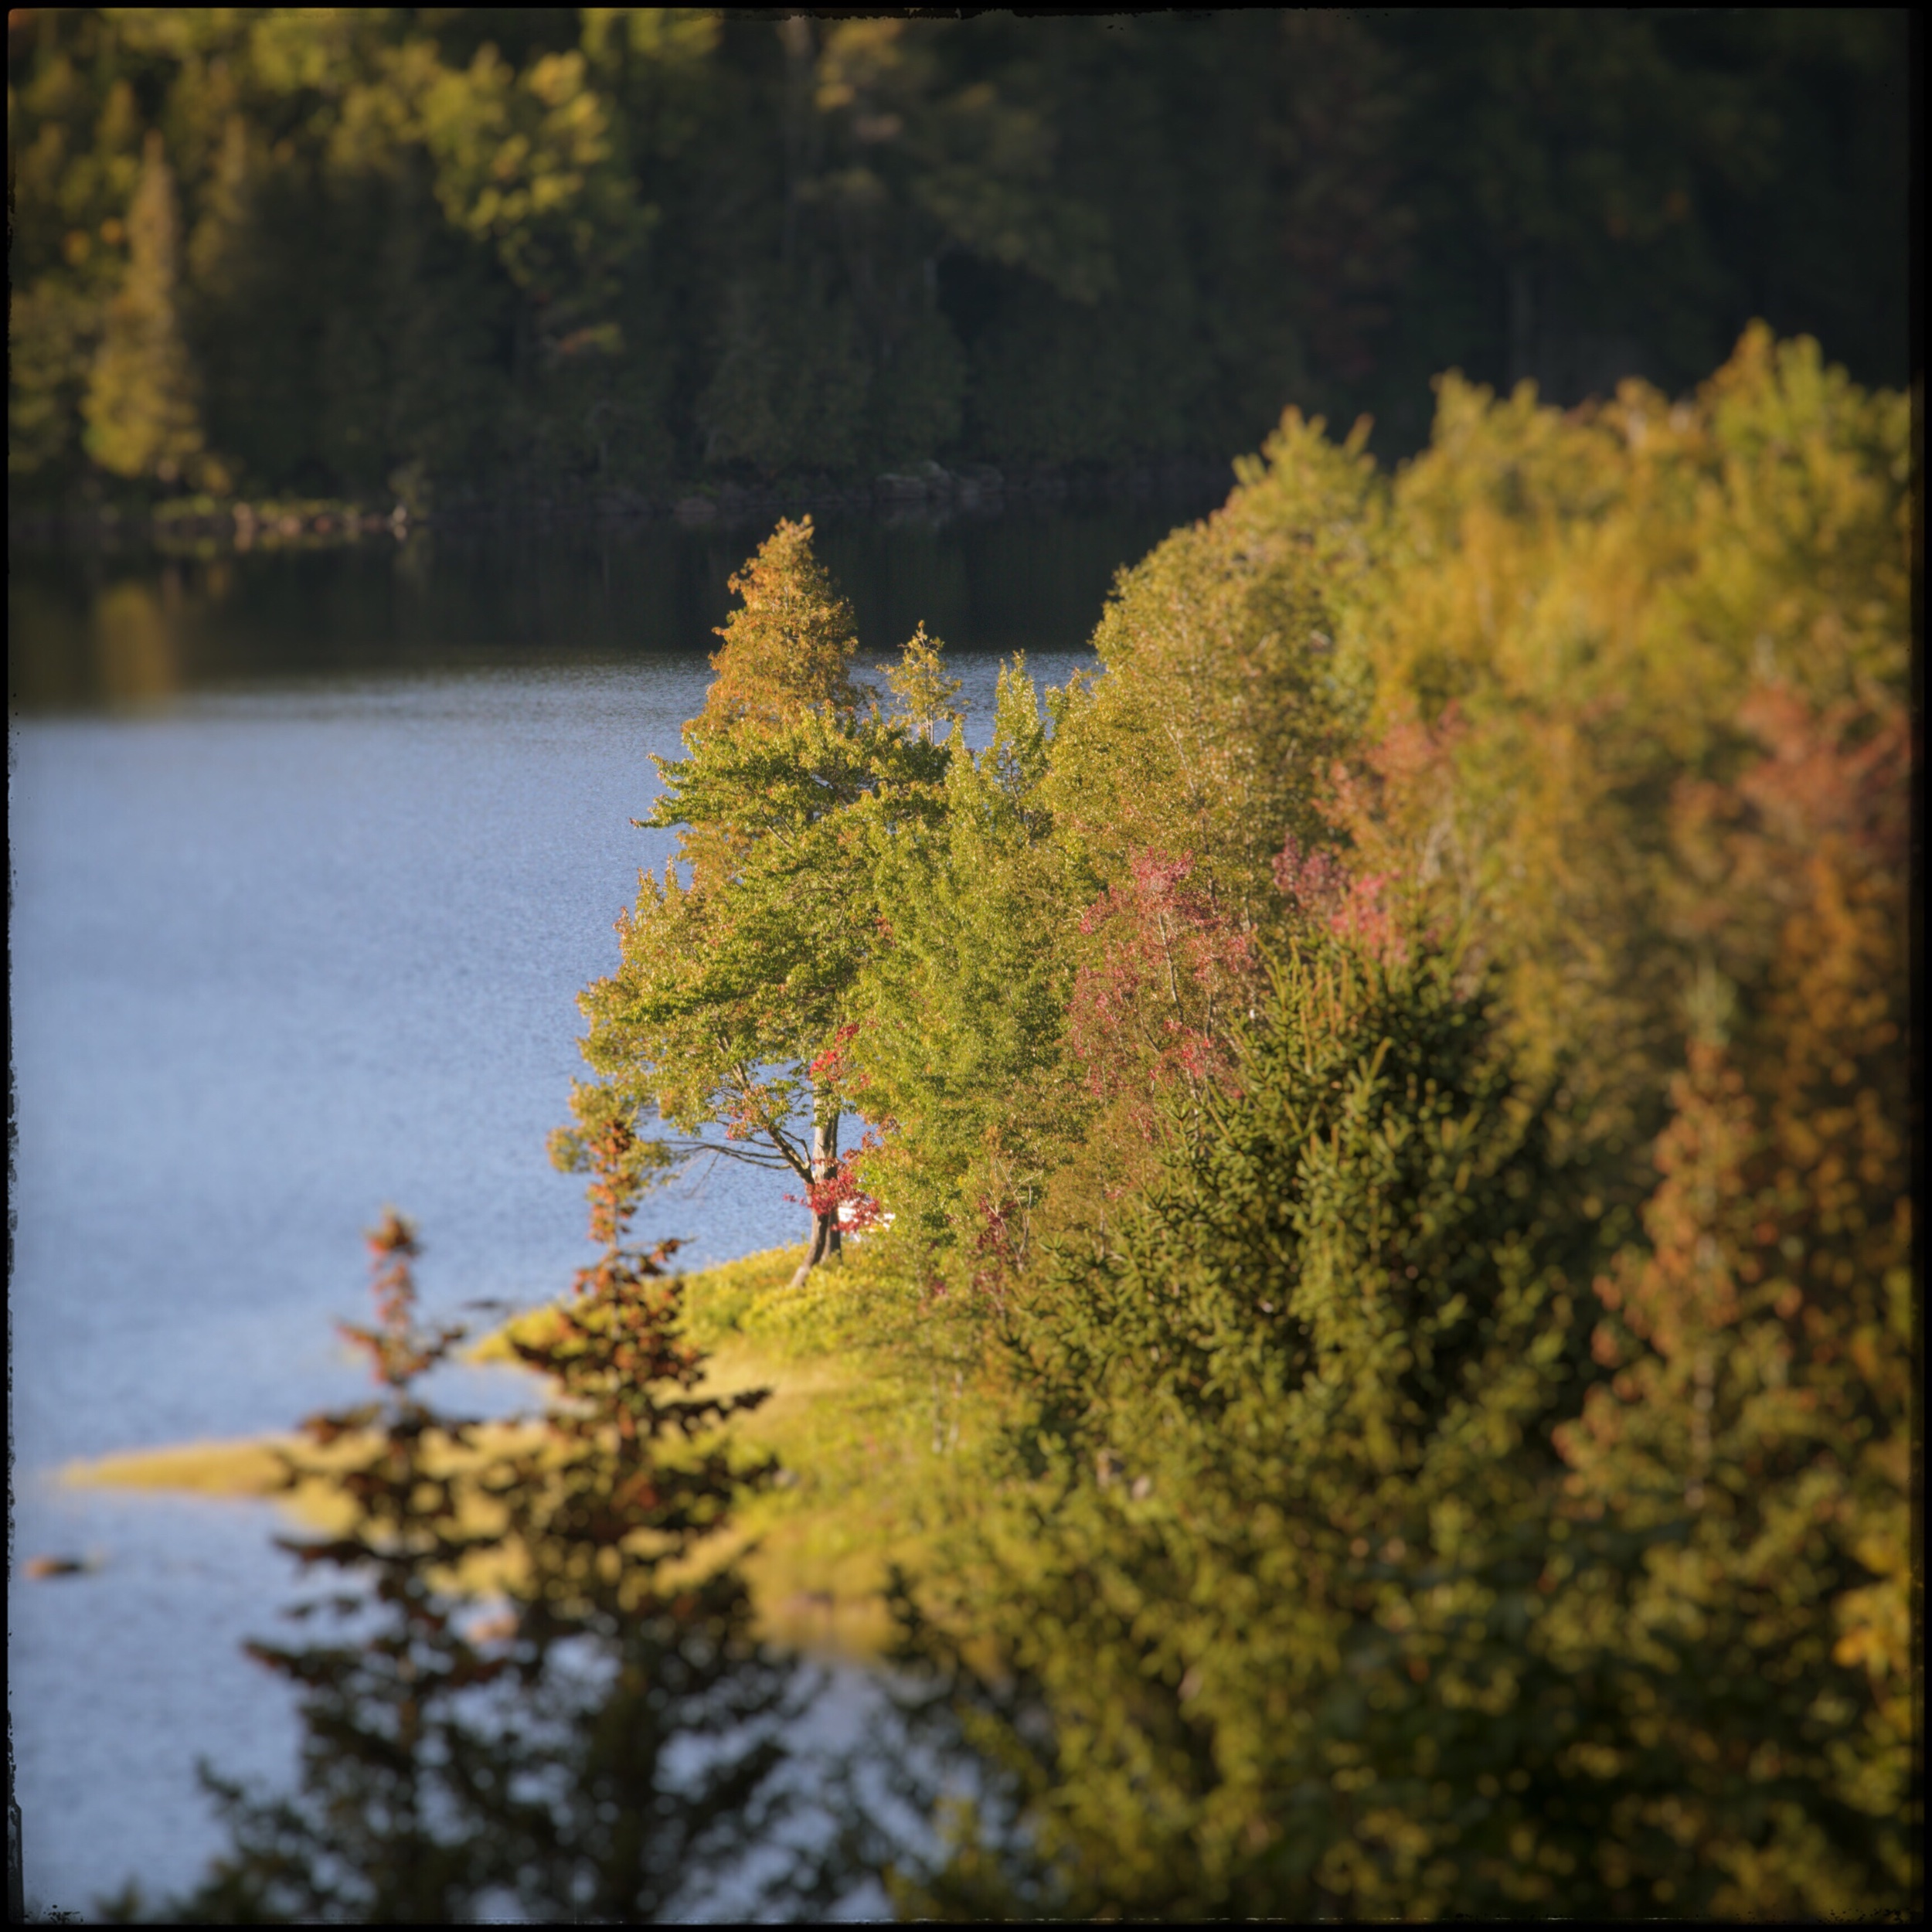 early evening sunlight   ~ Harris Lake / Newcomb, NY - in the Adirondack PARK  (embiggenable) • µ4/3 @ 400mm f8